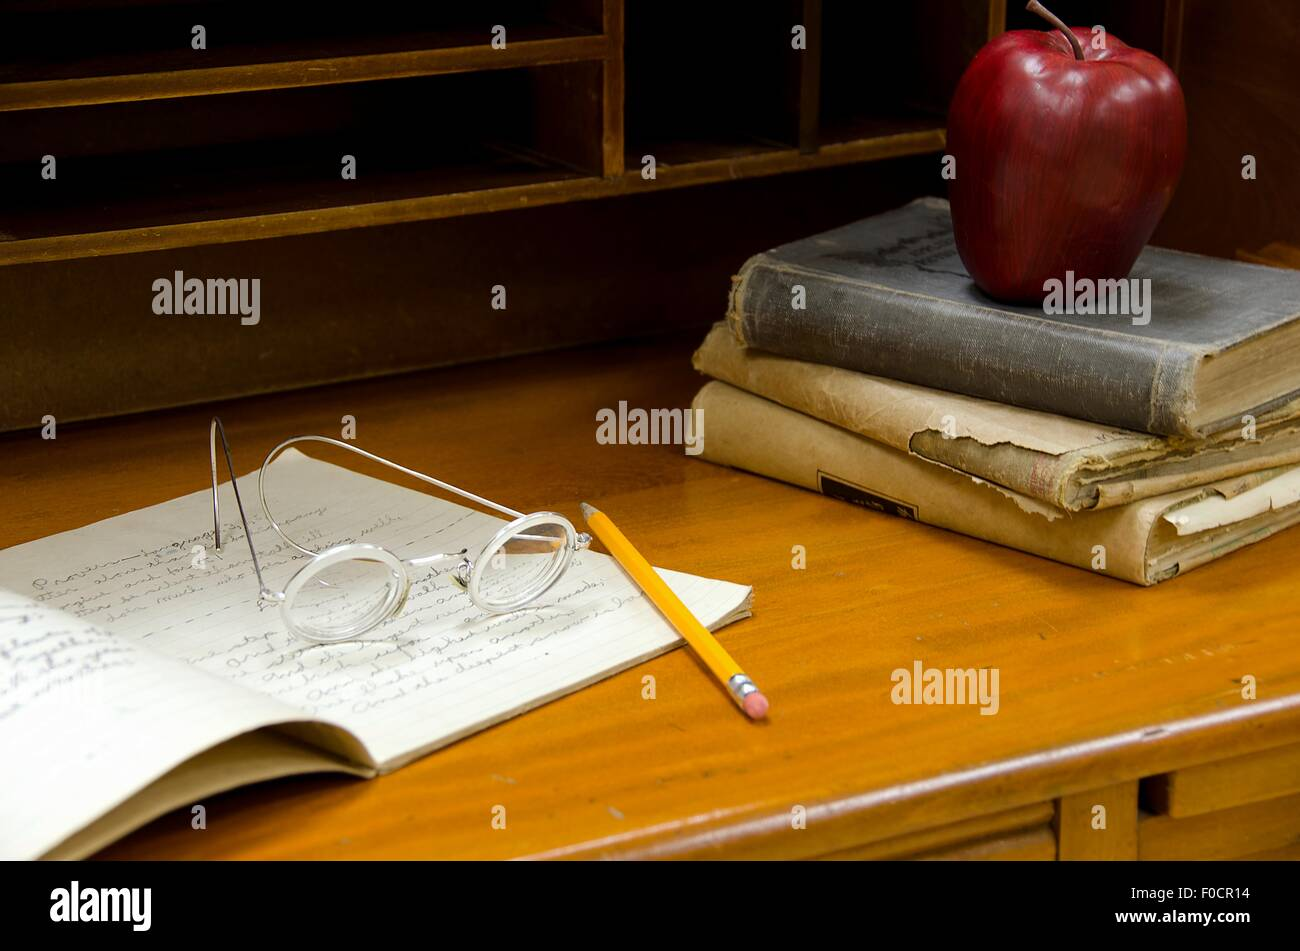 Old-fashioned eye glasses on notebook on antique teacher's desk - Old-fashioned Eye Glasses On Notebook On Antique Teacher's Desk